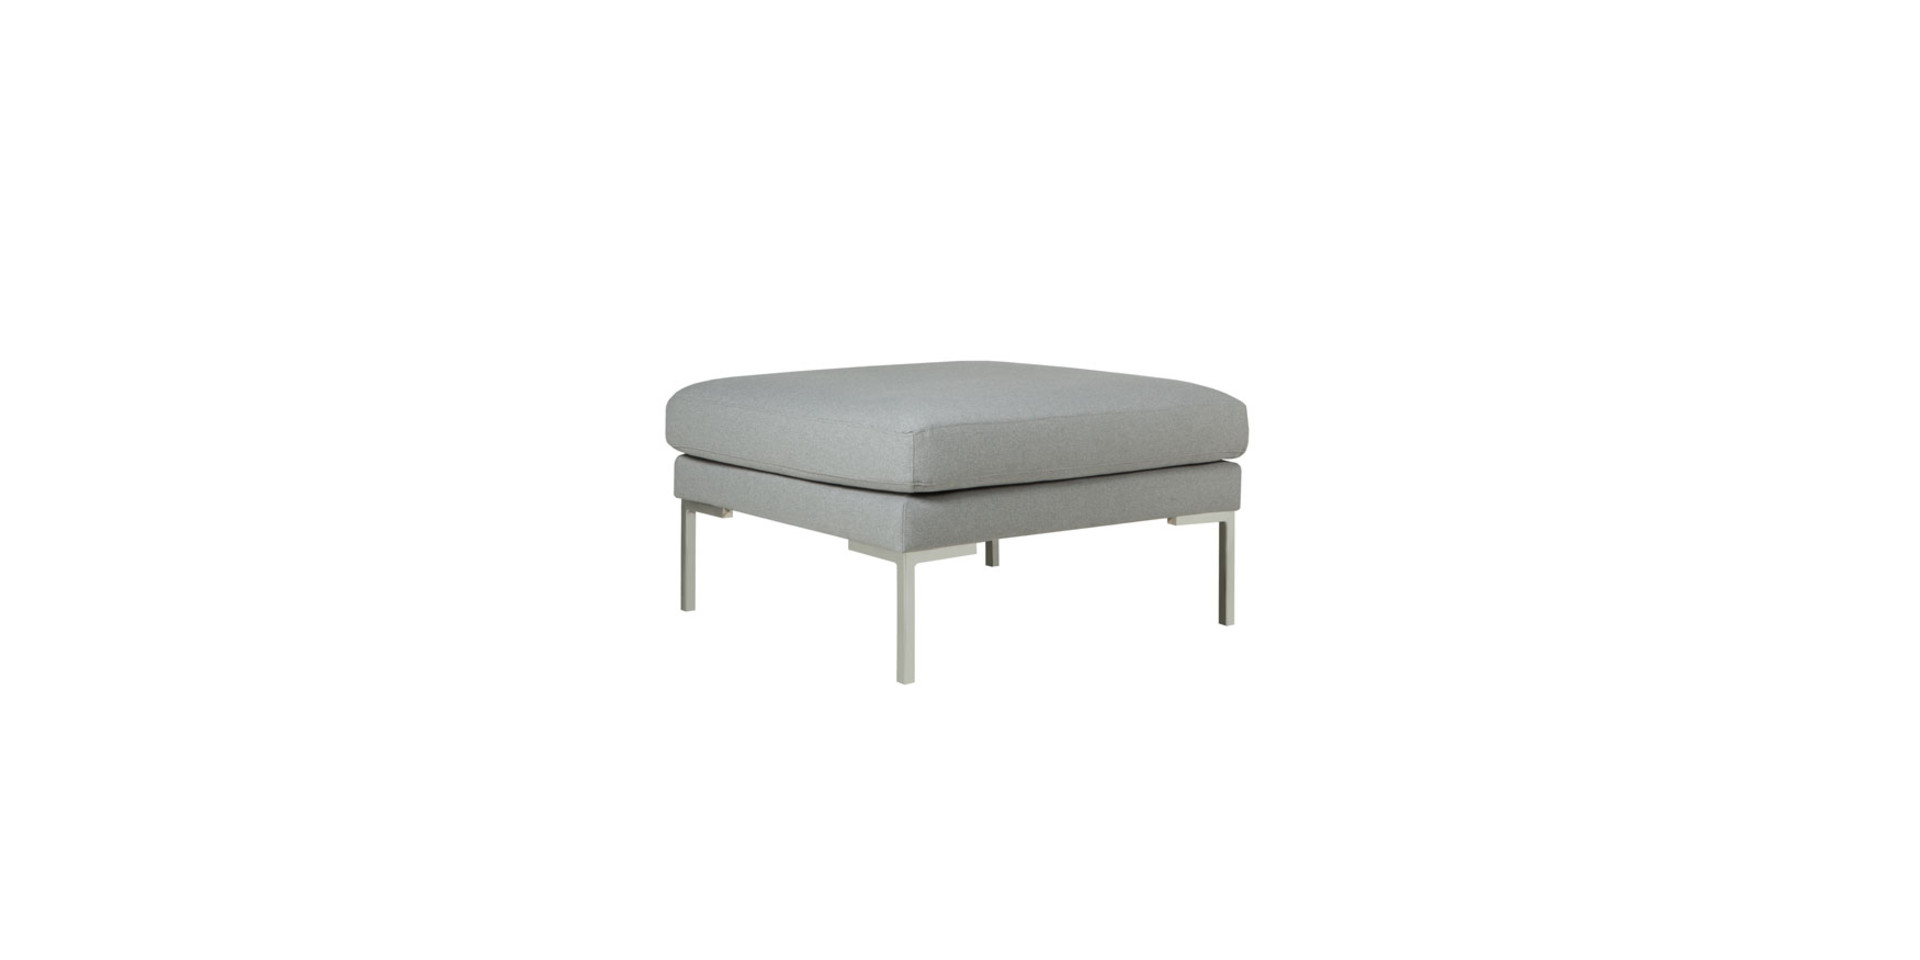 sits-ludvig-pouf-footstool_luis21_light_grey_3